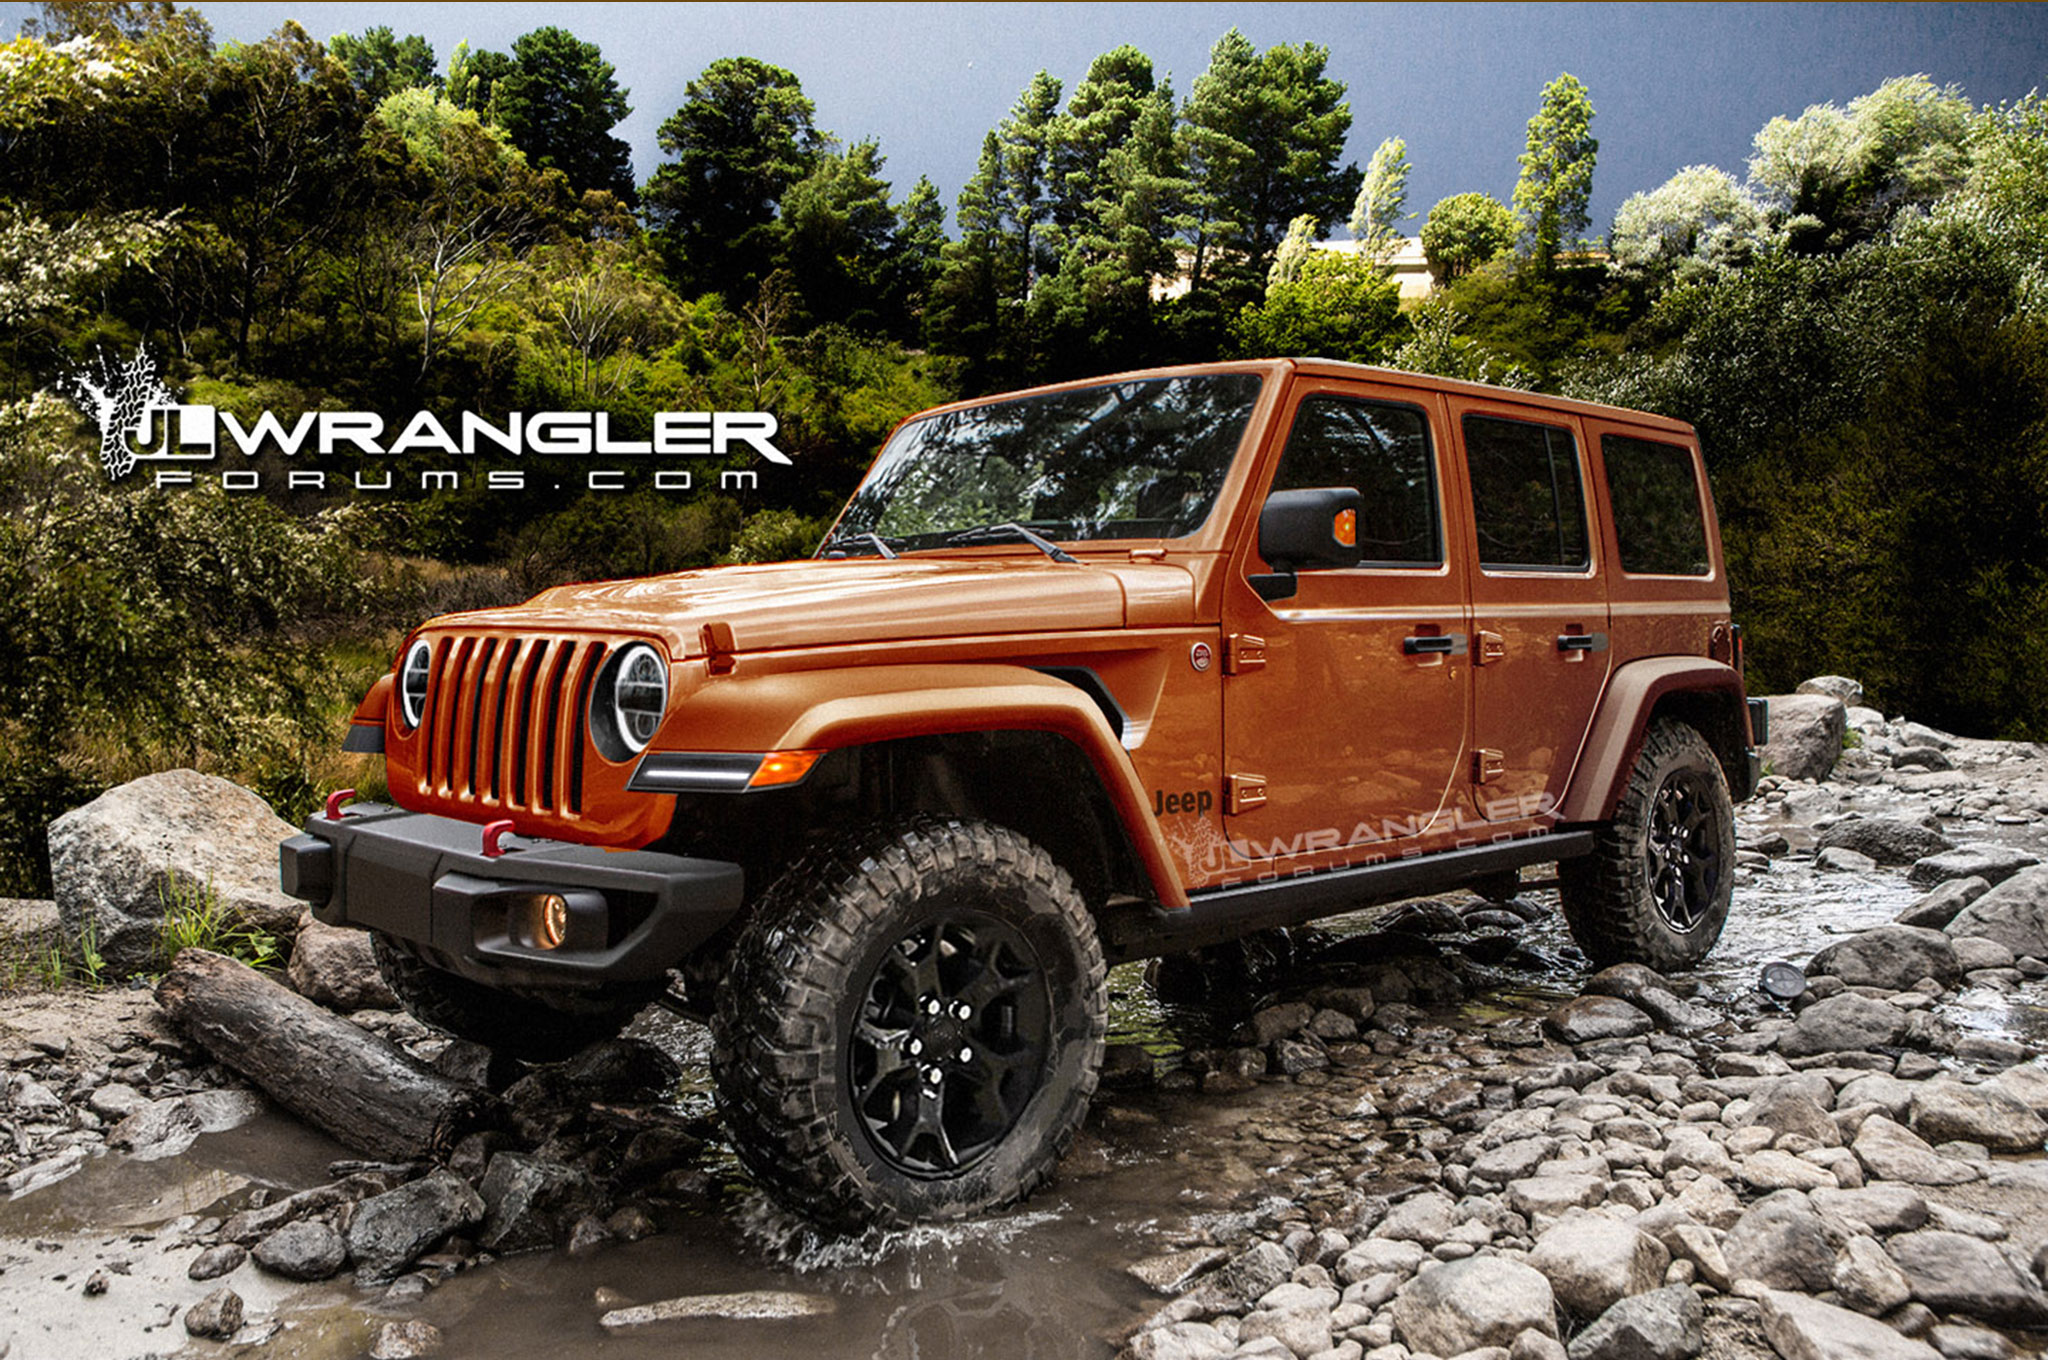 2018 Jeep Wrangler Owner's Manual Revealed. /12. Advertisement. to Skip.  1|12